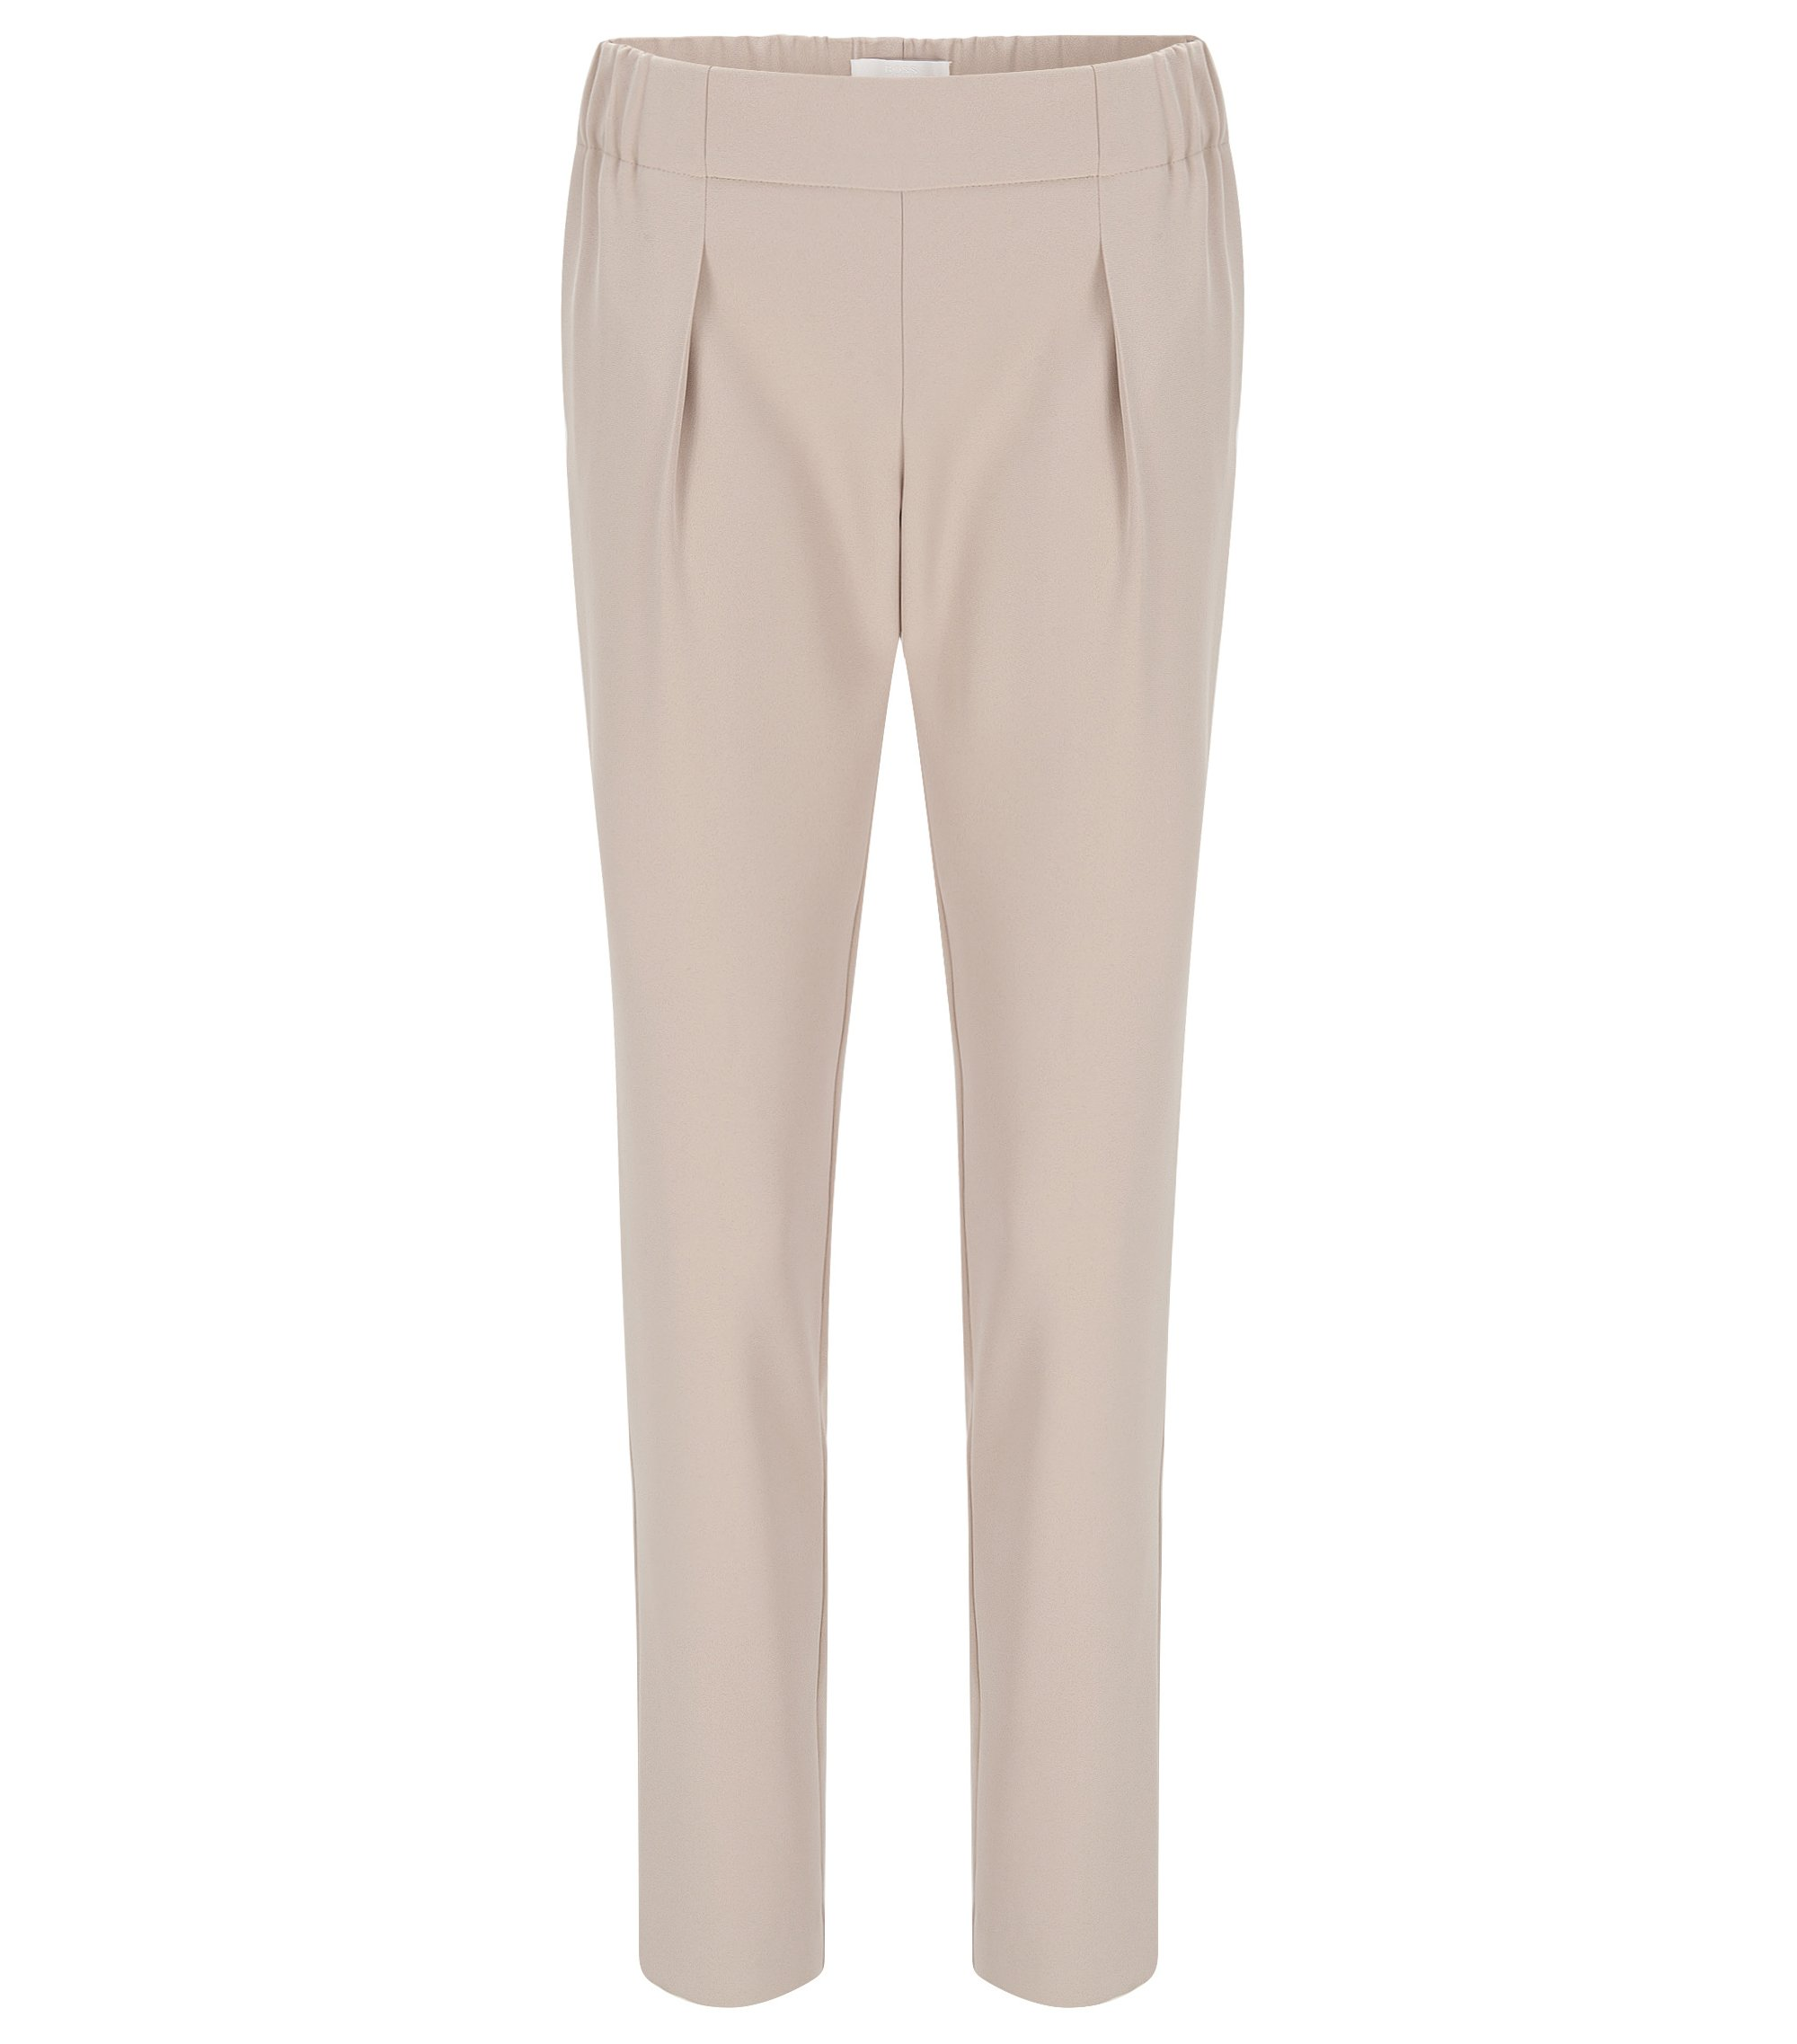 Pantaloni relaxed fit in stile jogging, Beige